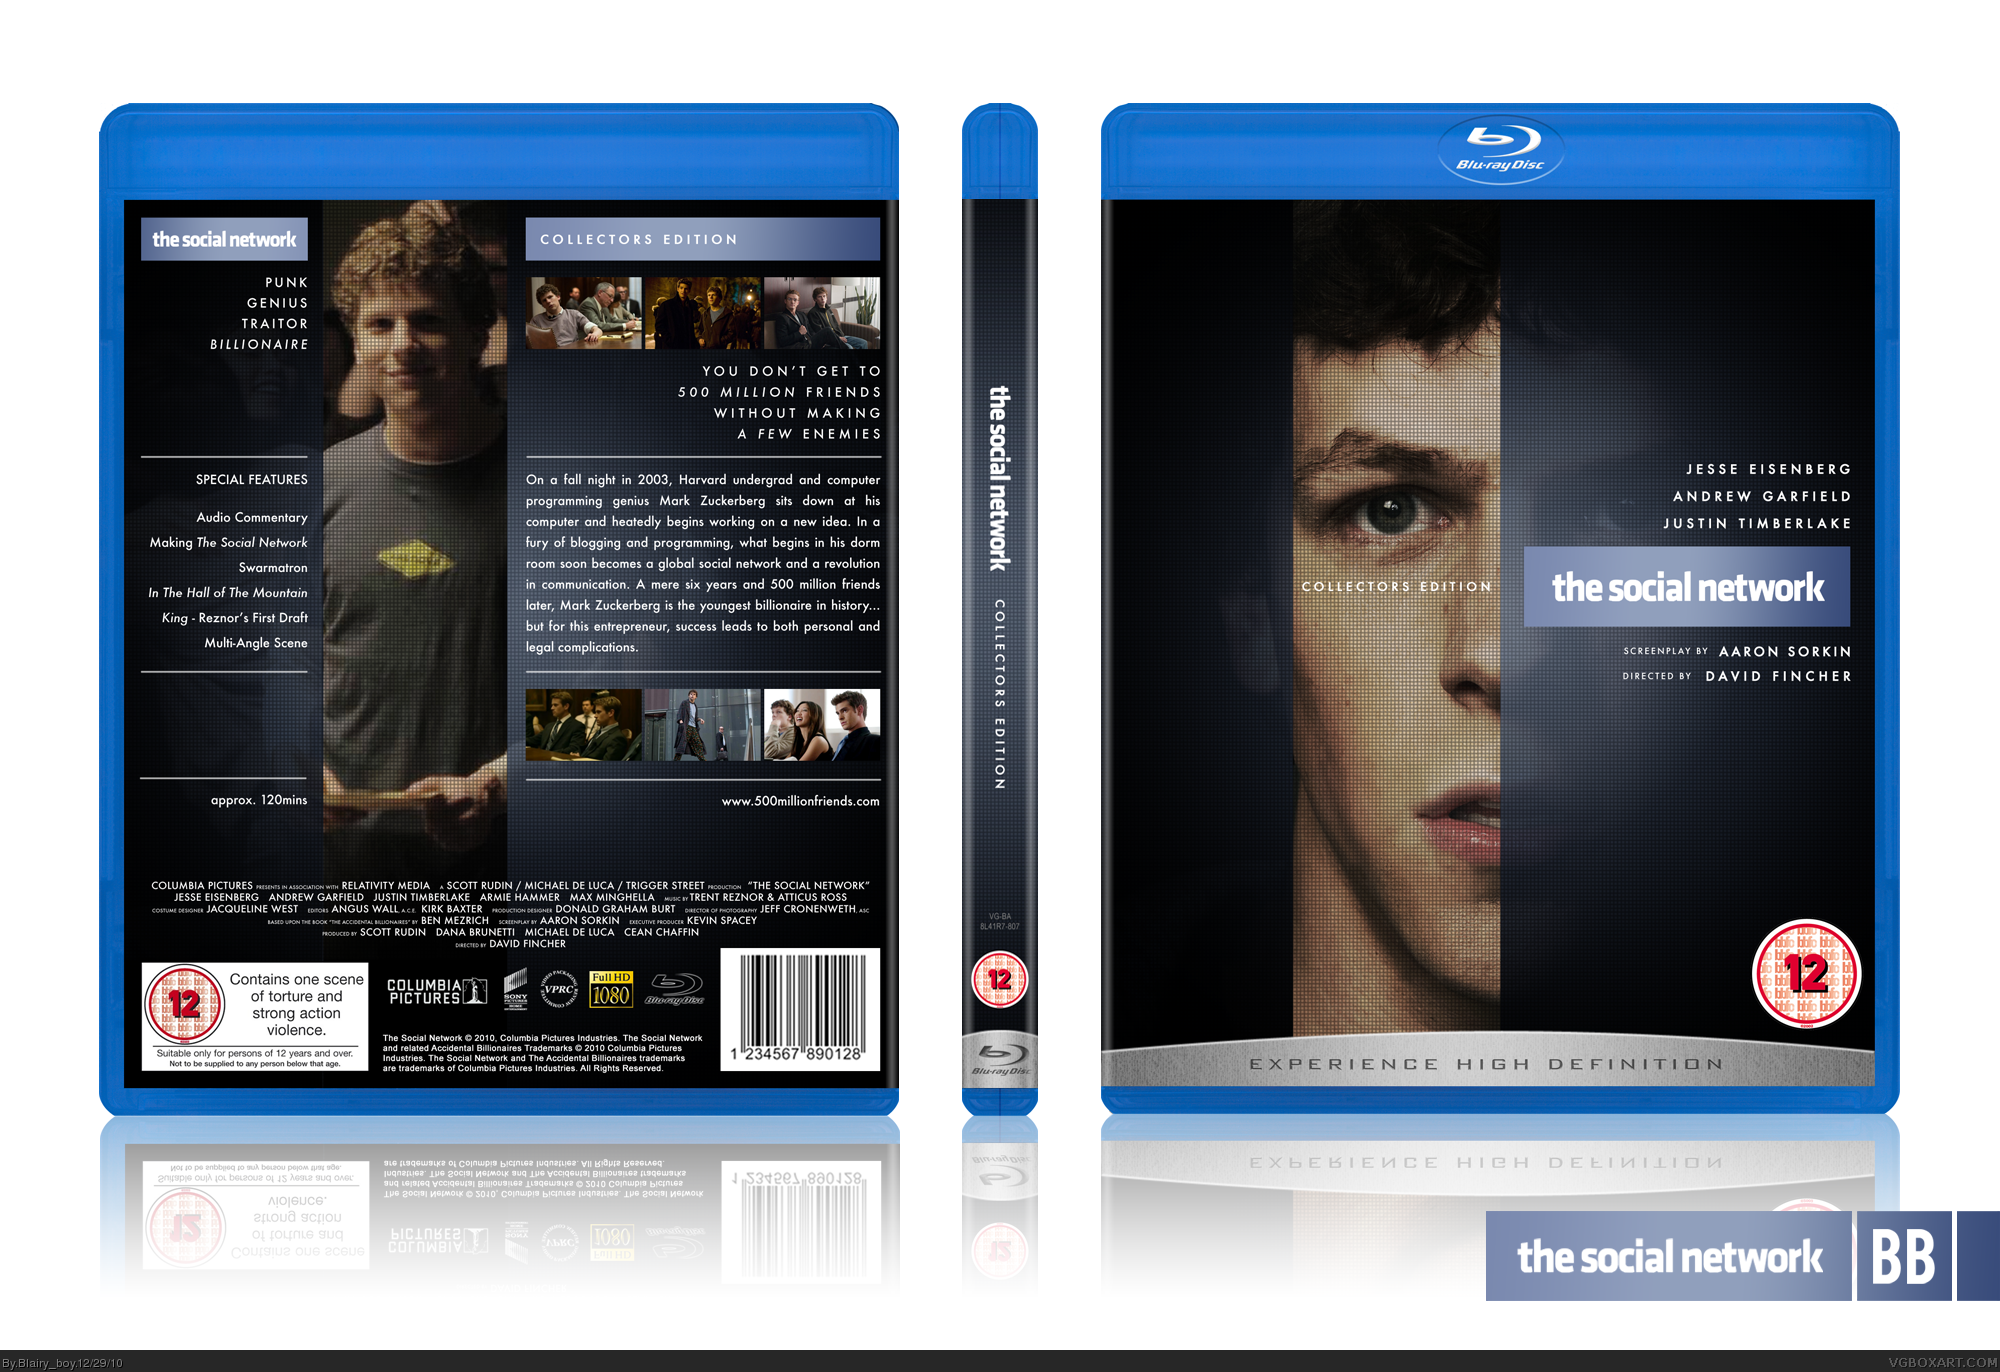 The Social Network box cover